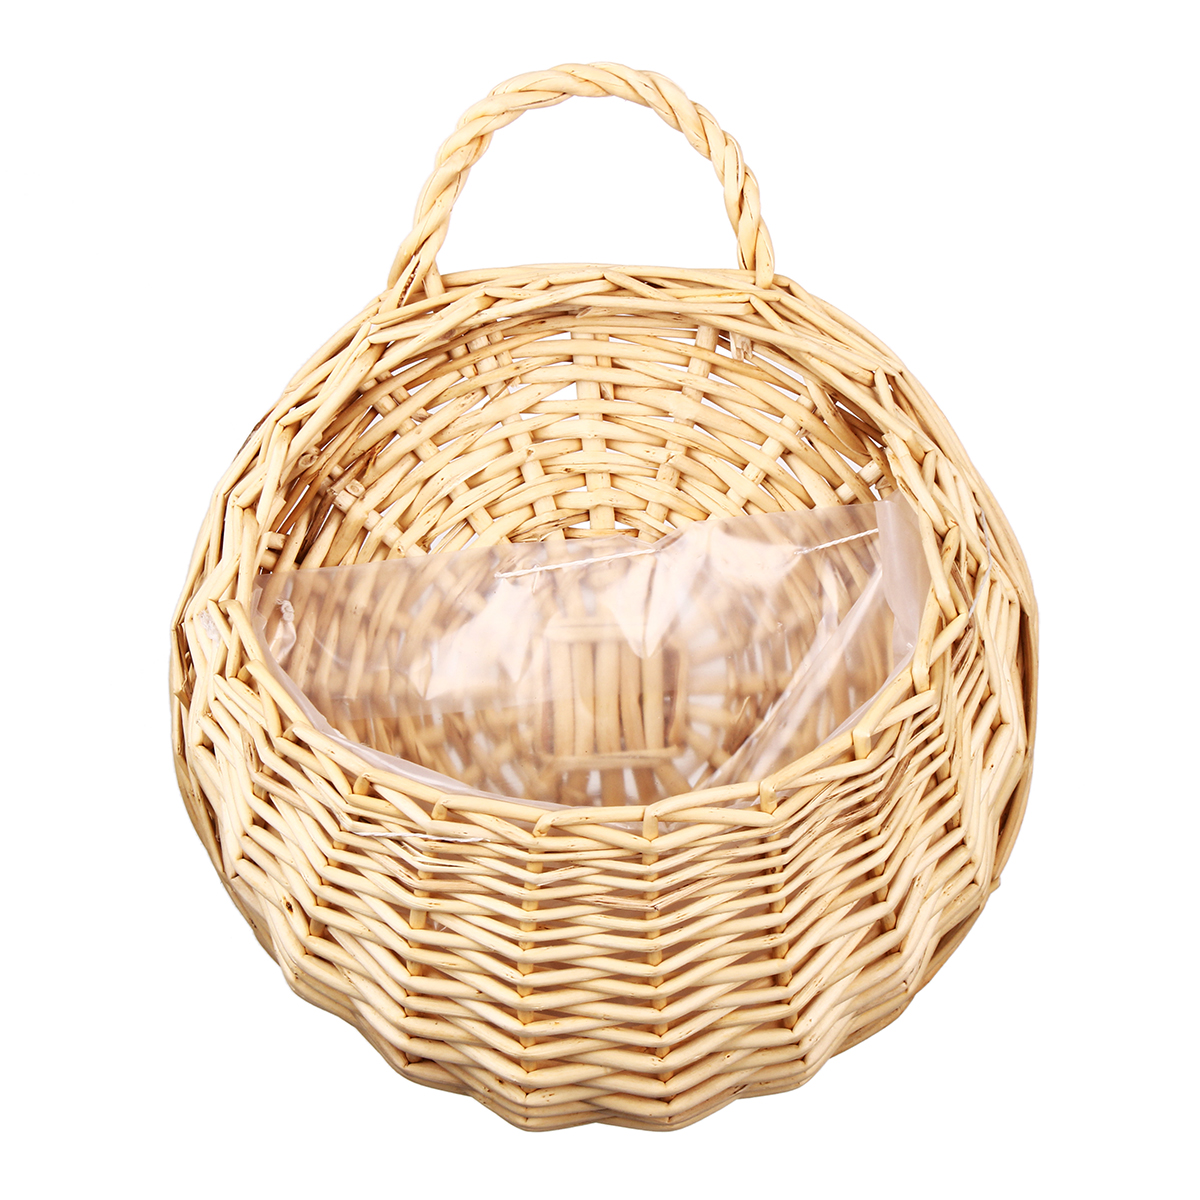 Wicker Rattan Flower Pot Plant Stand Holder DIY Home Wall Hanging ...